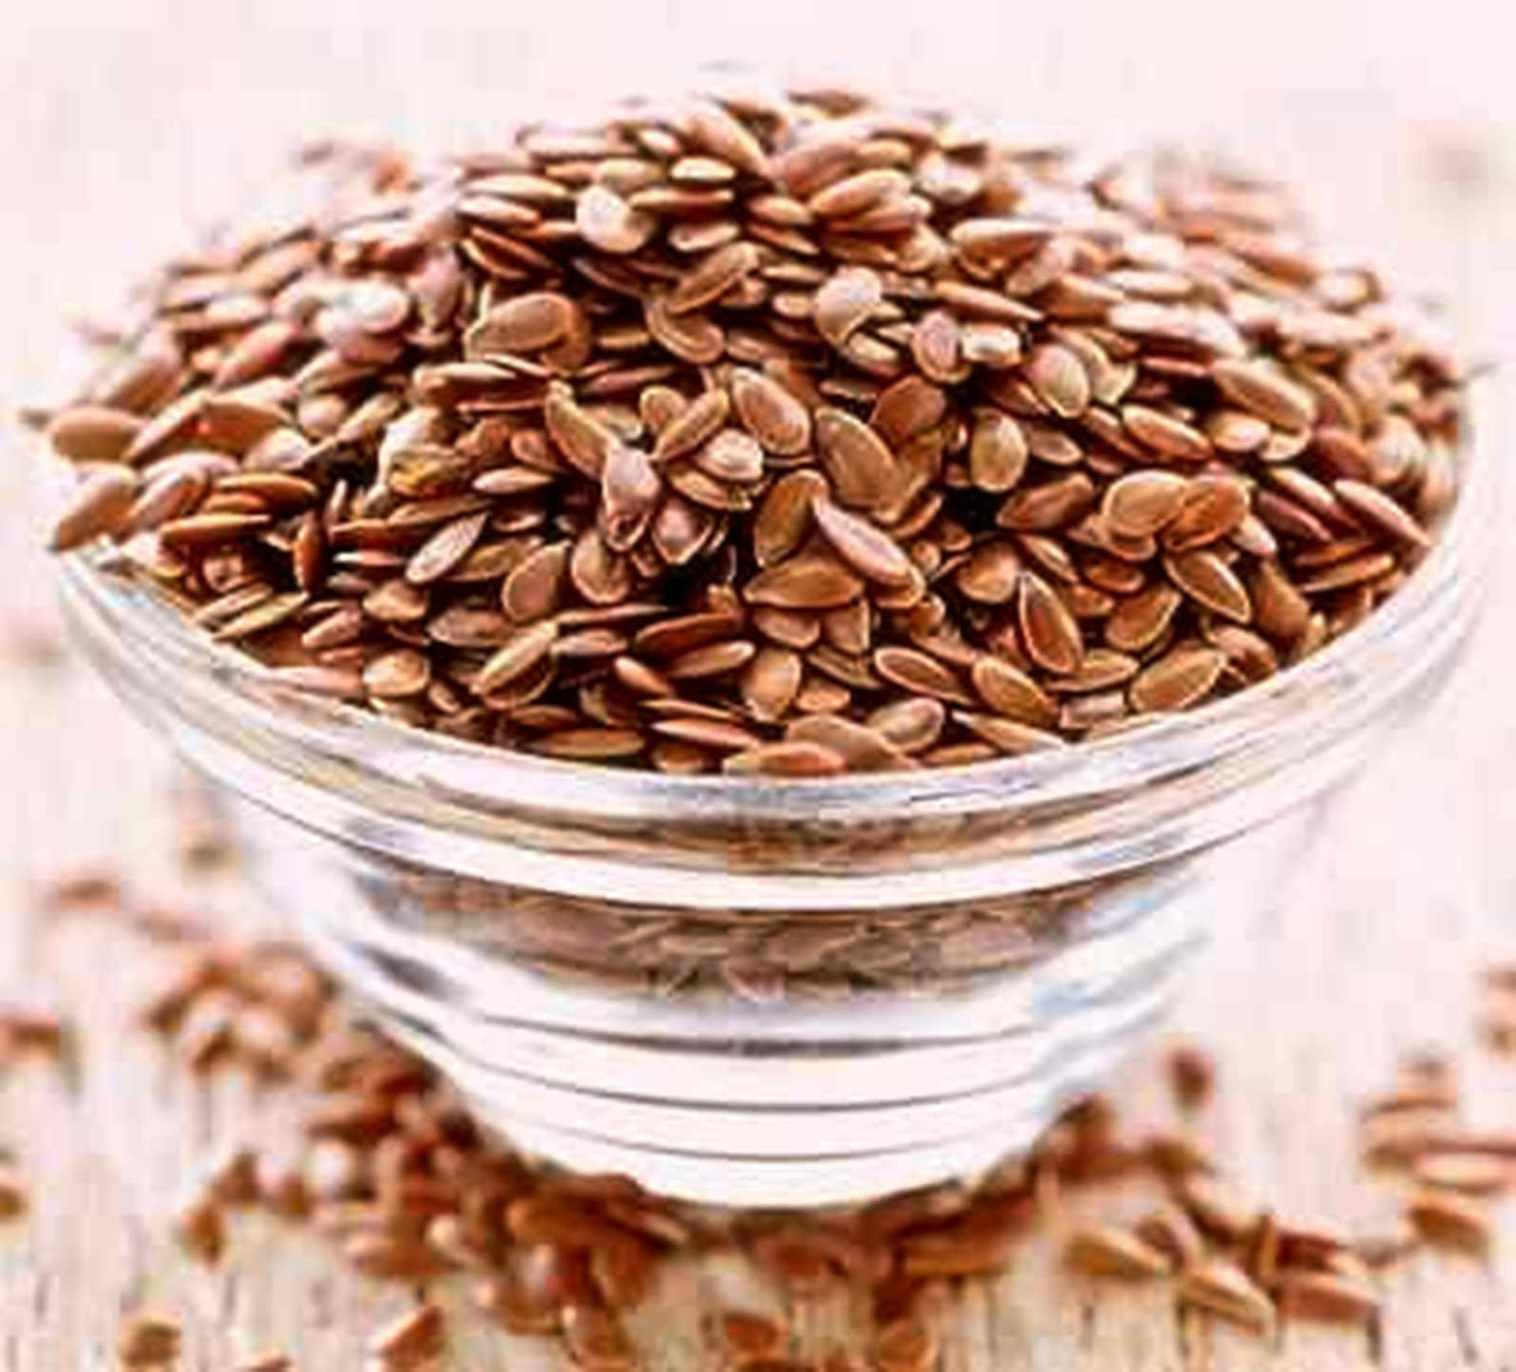 Details about Alsi Linseed Flax Seeds Natural Omega-3 Veg